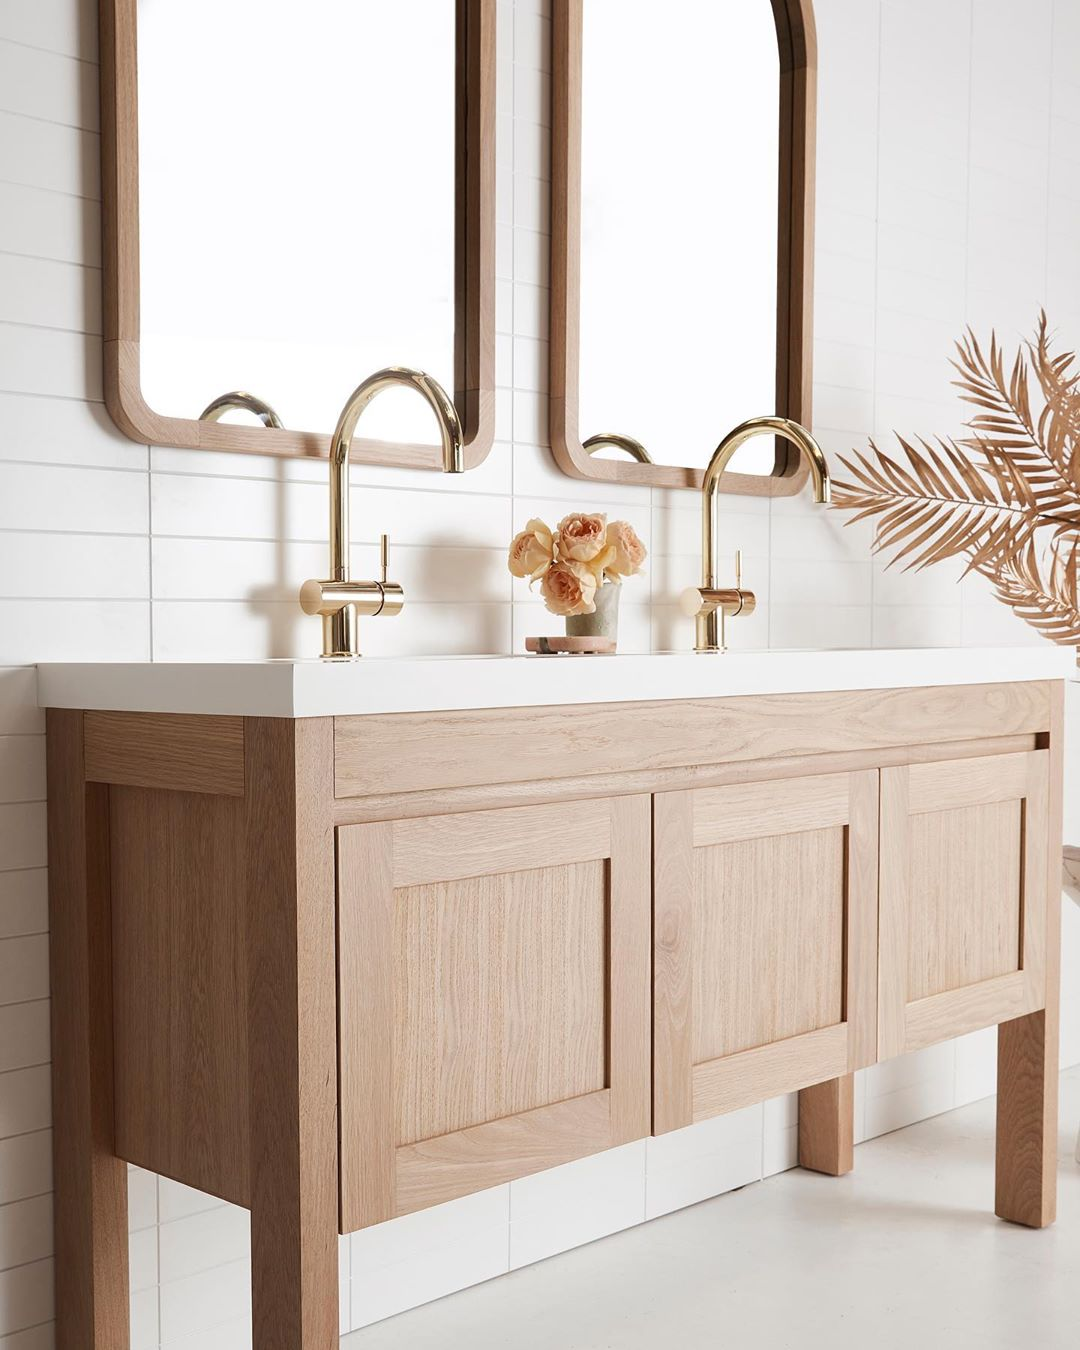 Custom oak freestanding vanity by Loughlin Furniture. #customvanity #bespokebathroom #oakvanity #bathroomdesign